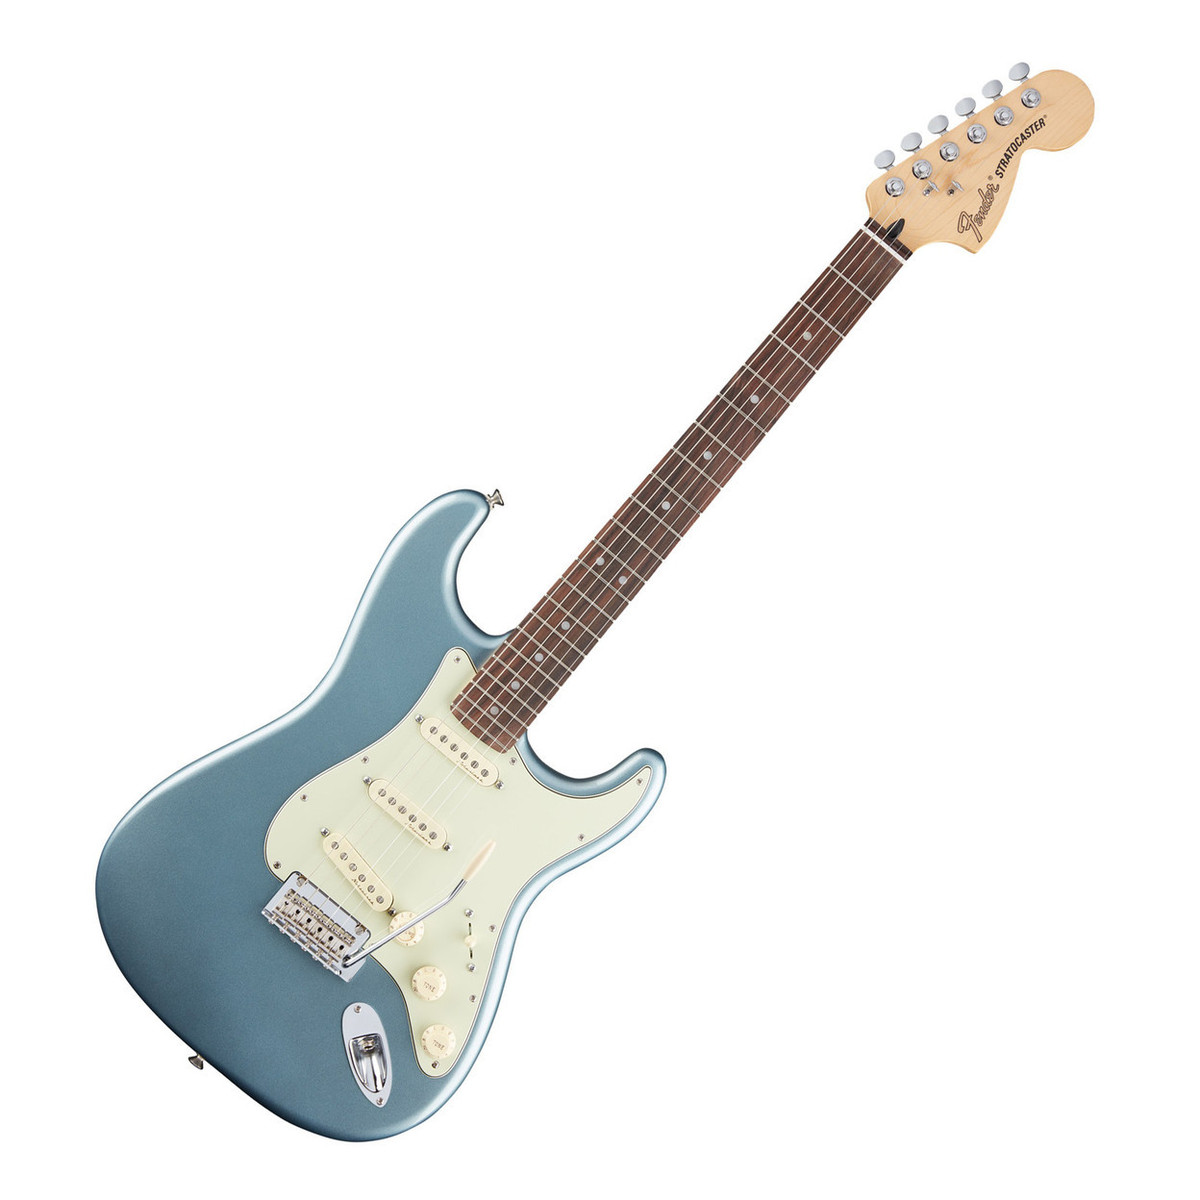 fender deluxe roadhouse stratocaster electric guitar mystic ice blue at. Black Bedroom Furniture Sets. Home Design Ideas